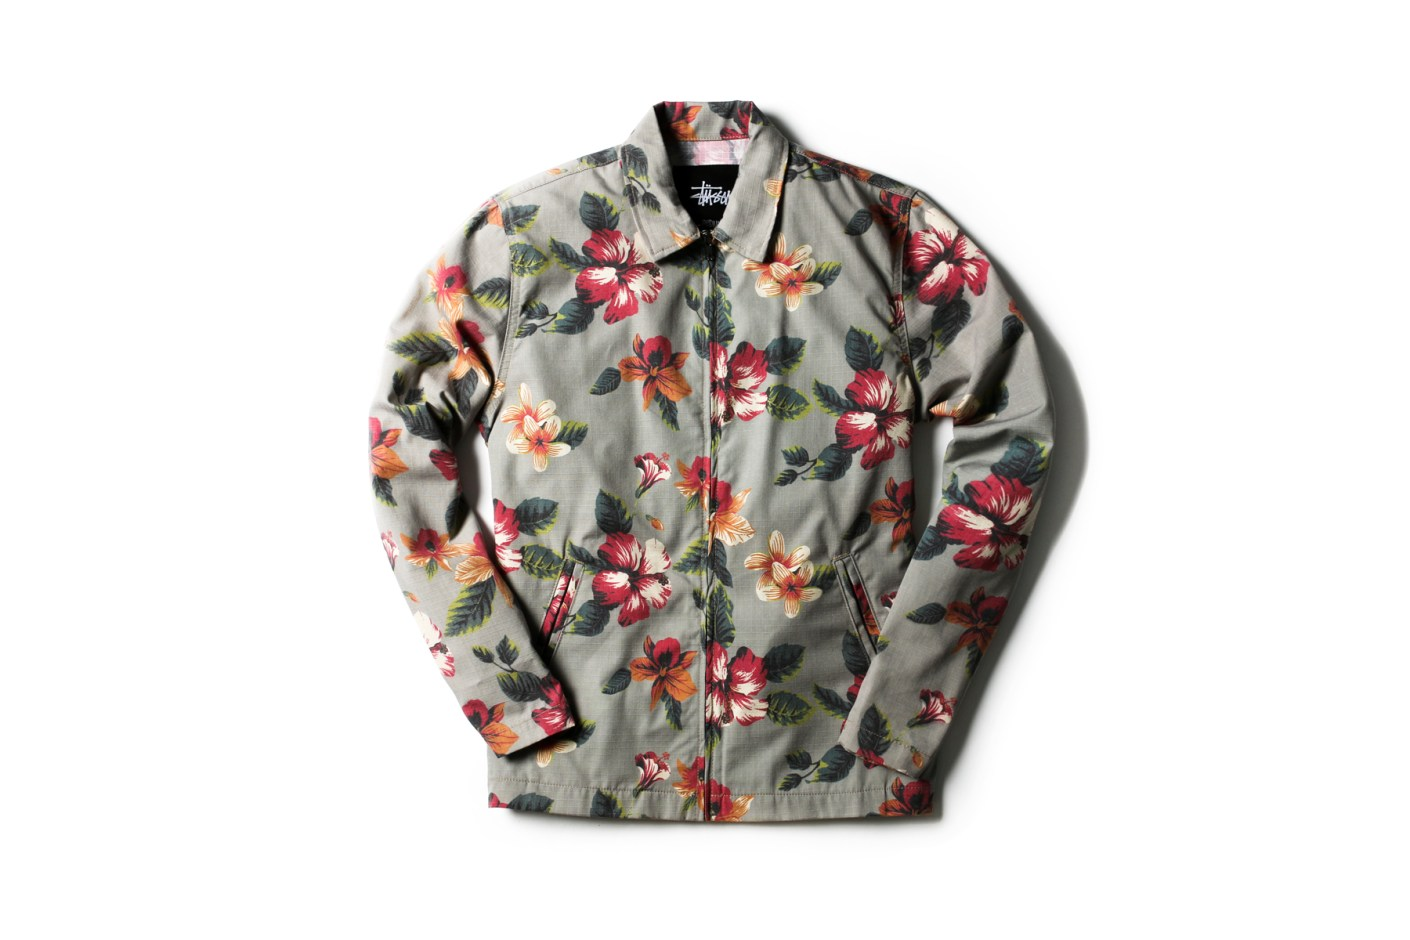 Image of Stussy 2014 Spring/Summer Vintage Flower Coach Jackets